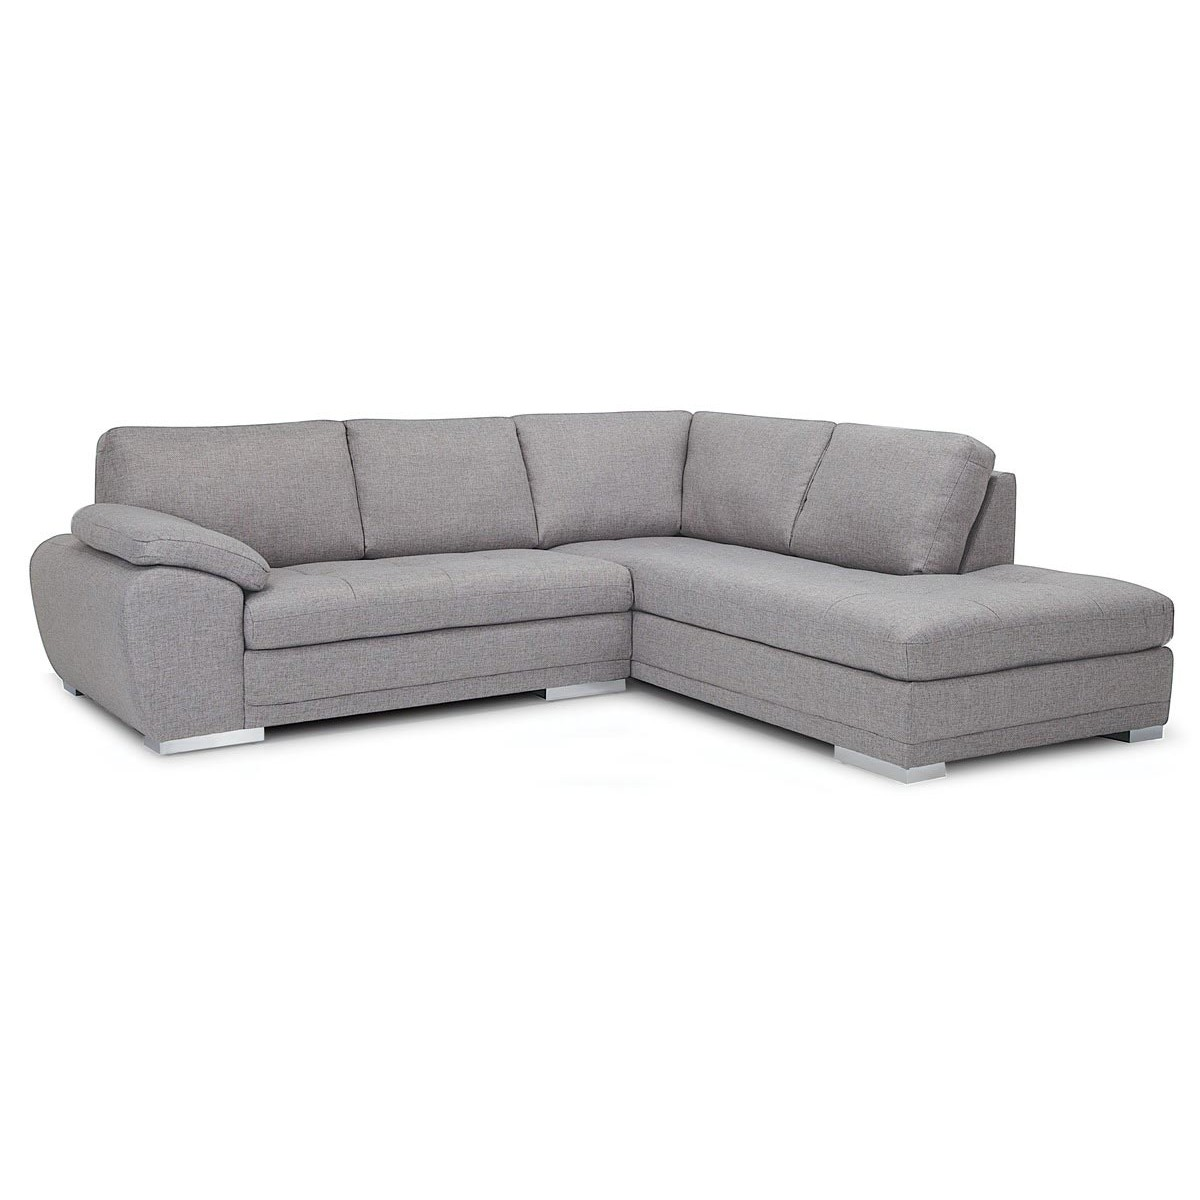 Palliser Sofas Canada moreover 1421101648 also 488077678339069629 together with Curved Back Sectional Sofa besides Id F 1137514. on fine leather sectional sofas